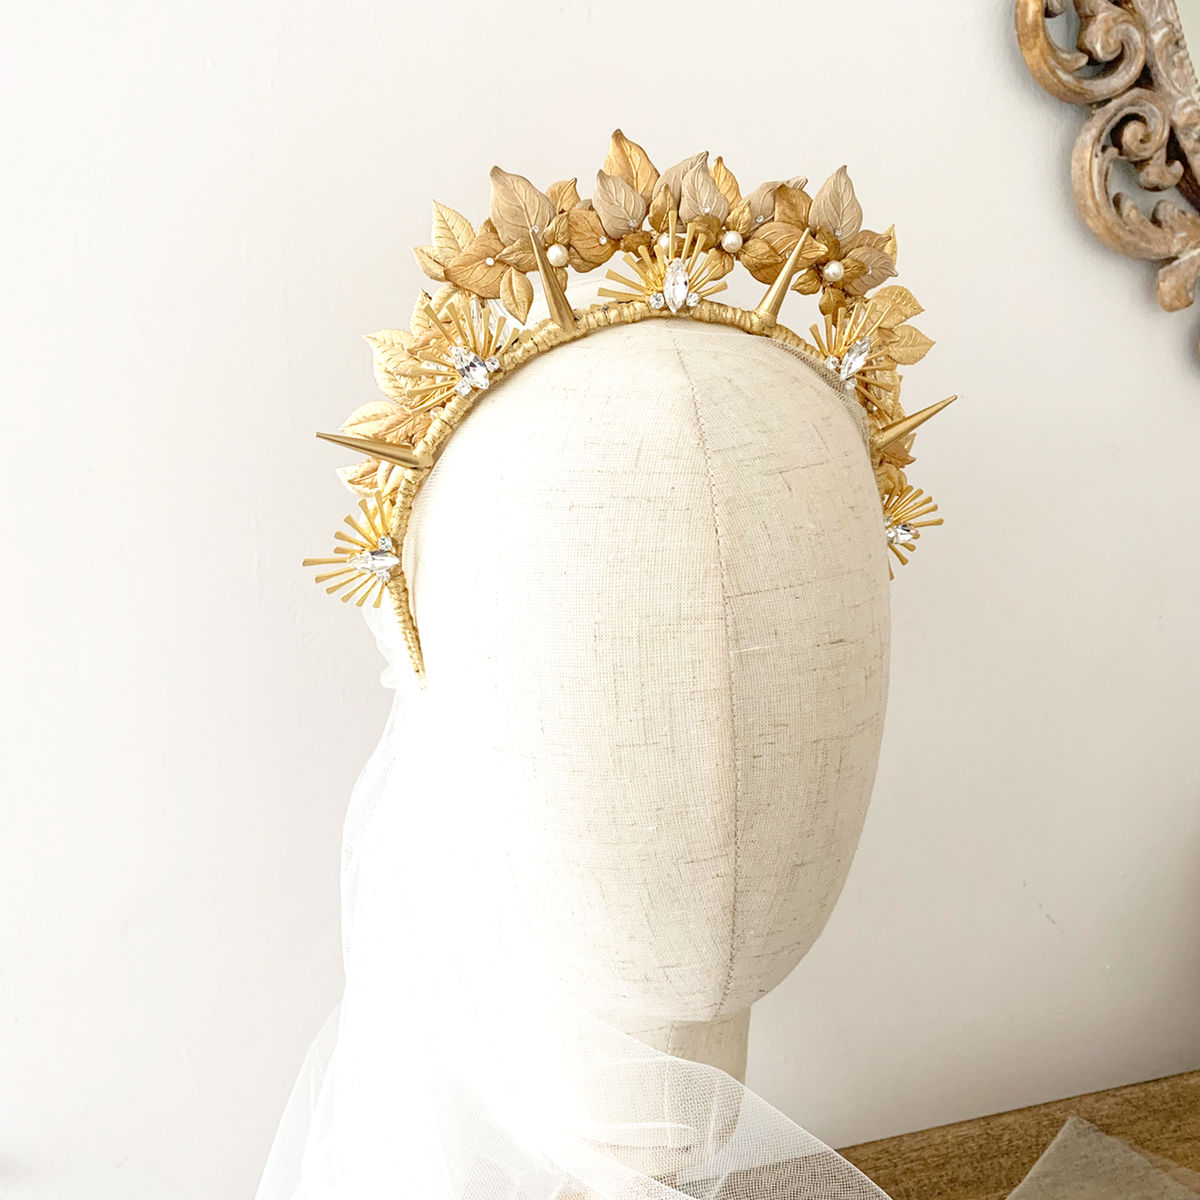 Apollo - Golden Halo Headdress - product images  of